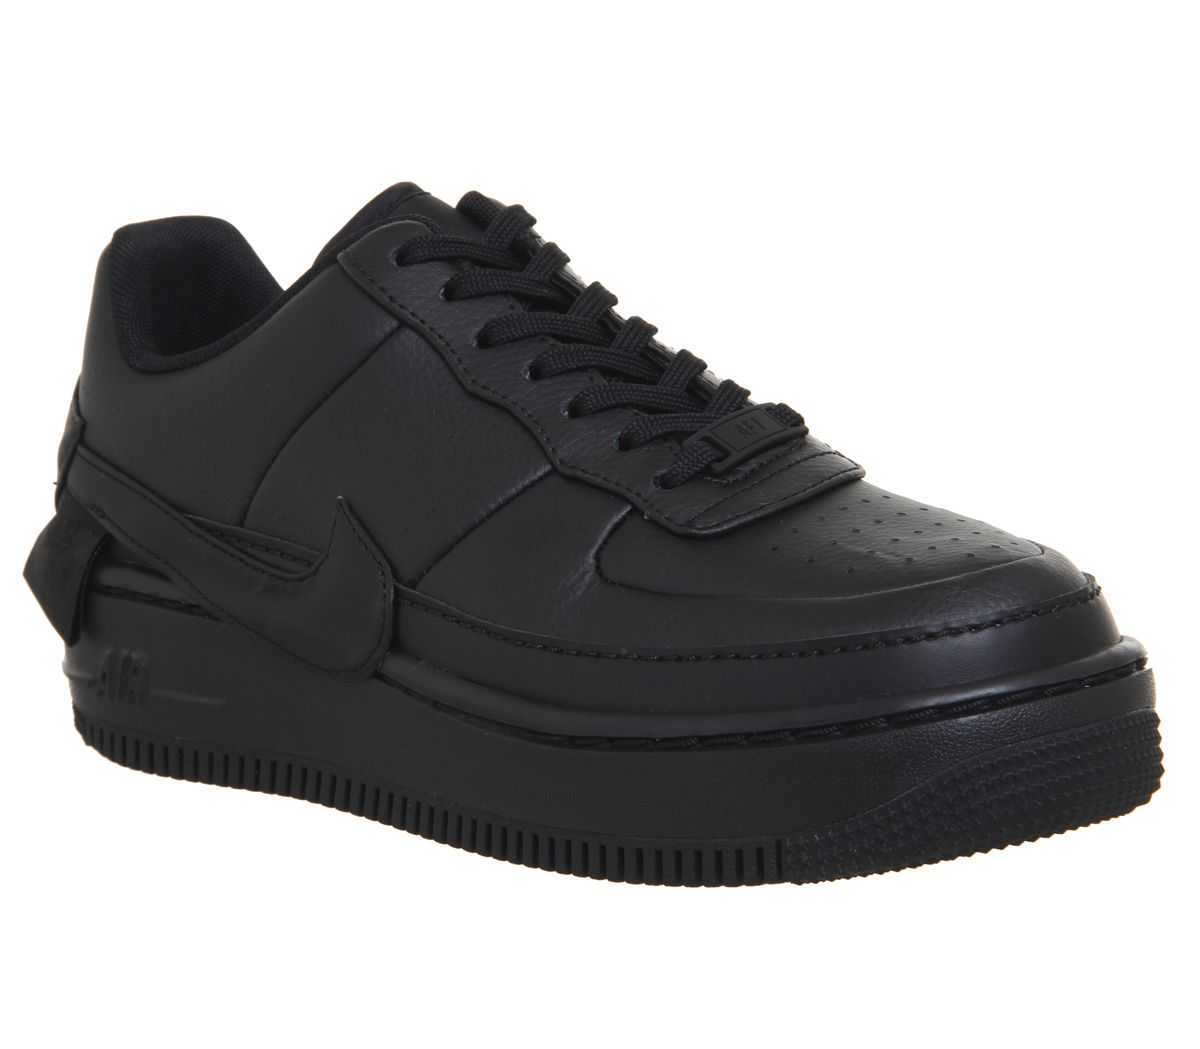 new arrival e5d35 e49cd Nike AF1 Jester XX Trainer Black Mono - Hers trainers